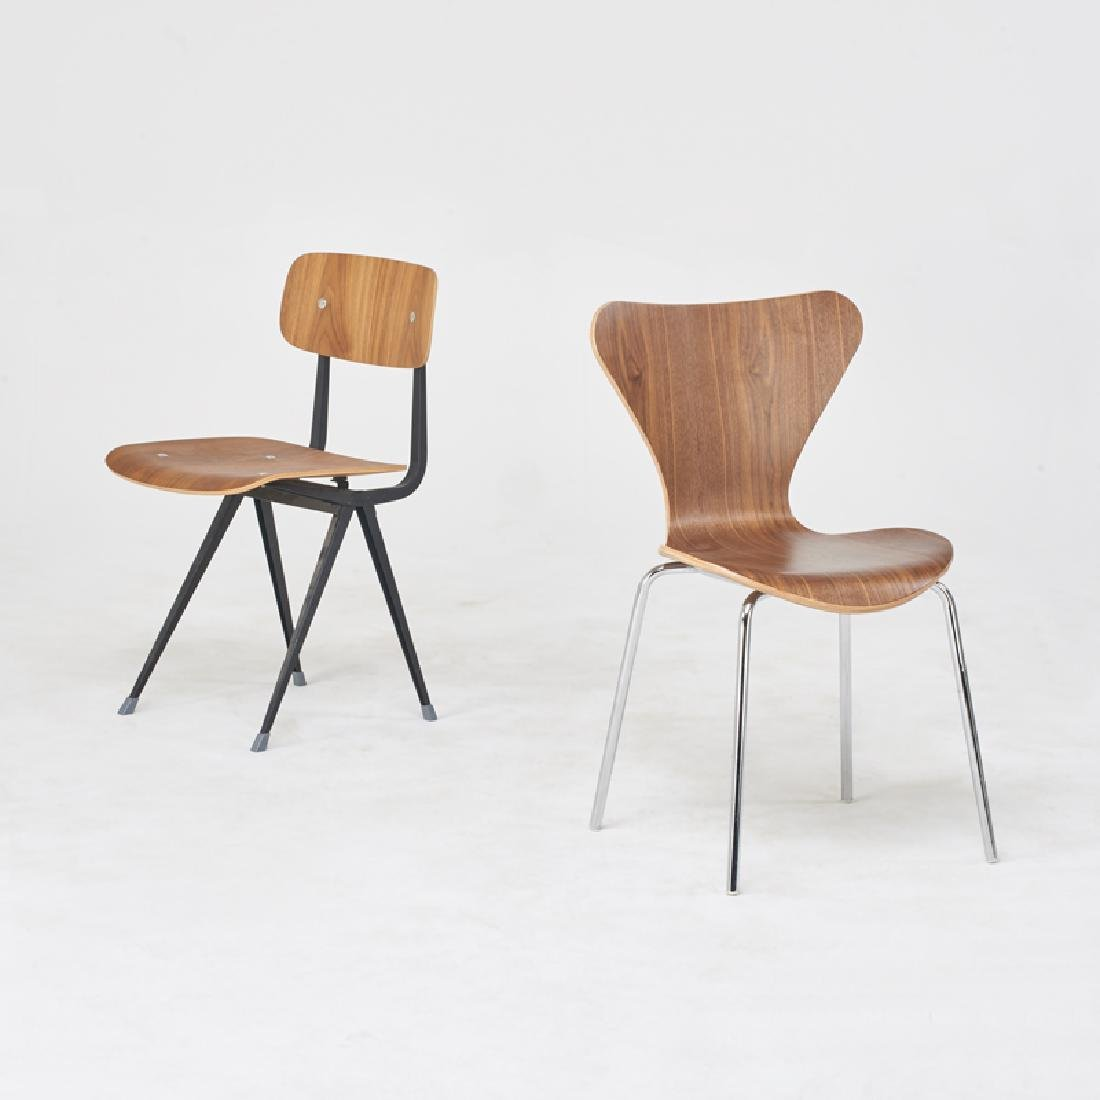 STYLE OF ARNE JACOBSEN & JEAN PROUVE